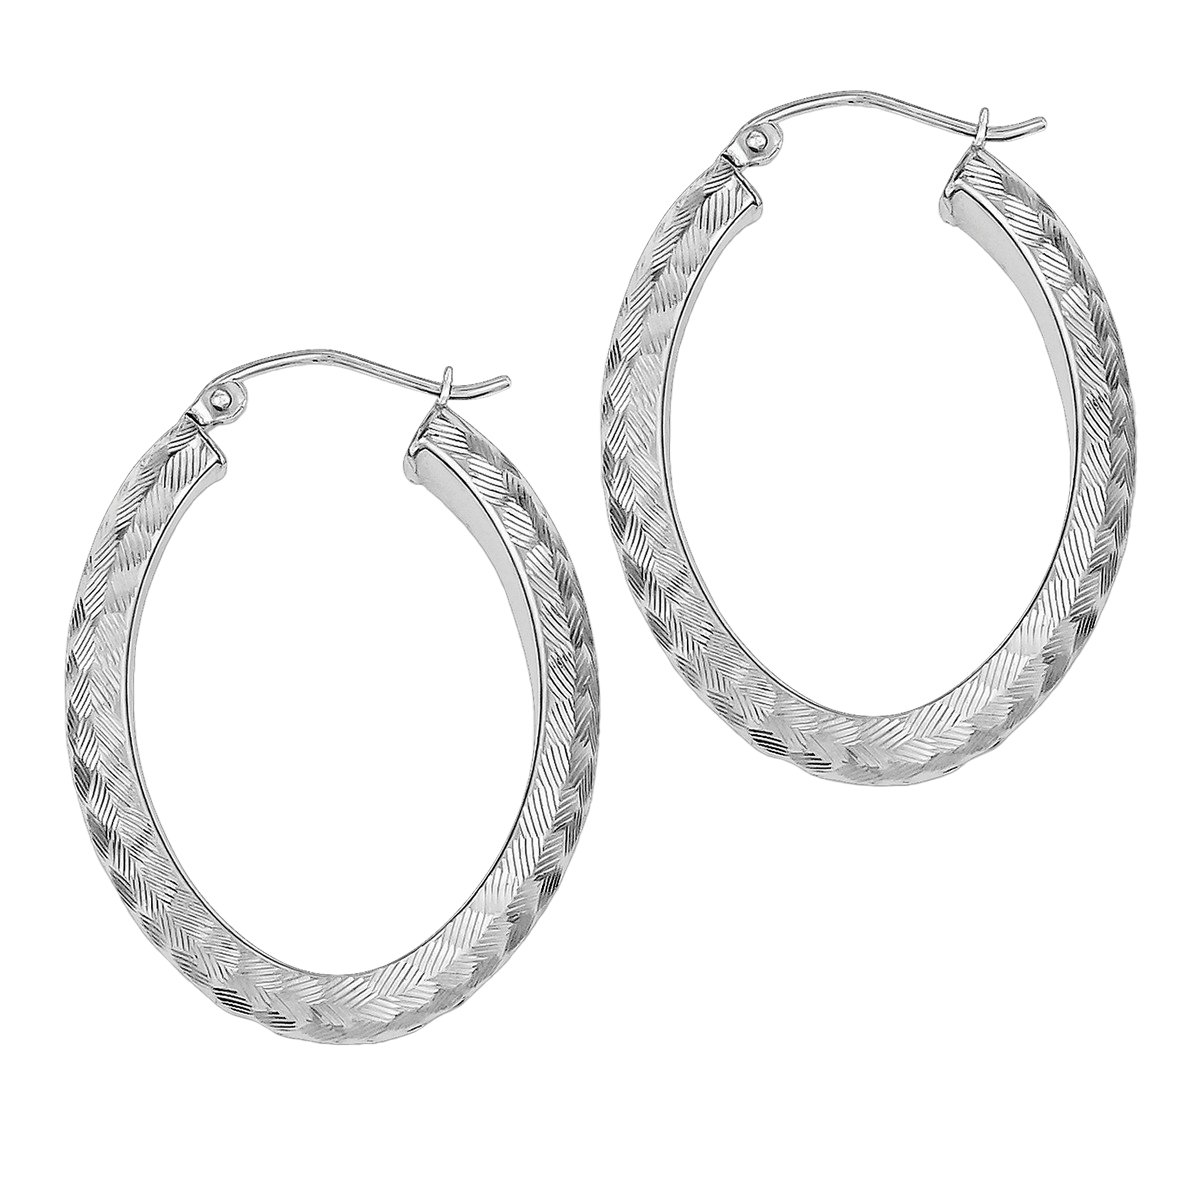 Diamond Cut Textured Earrings Sterling Silver Rhodium Plated Small Oval Hoop